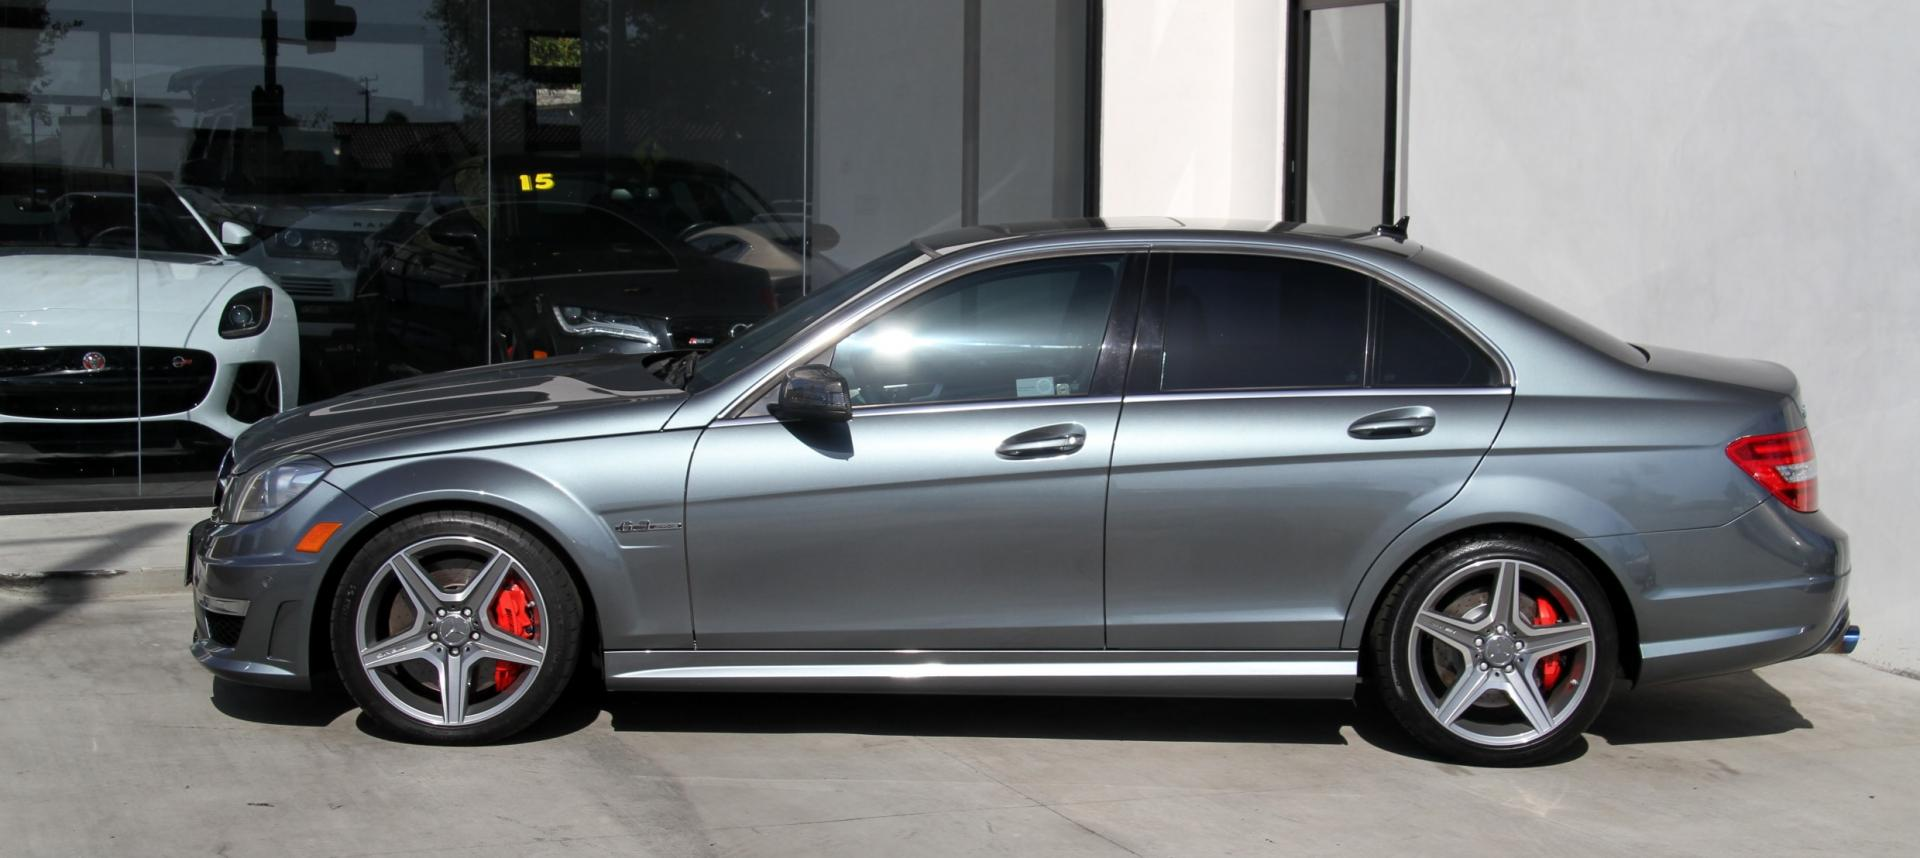 2012 mercedes benz c 63 amg performance pkg stock for Mercedes benz nearby